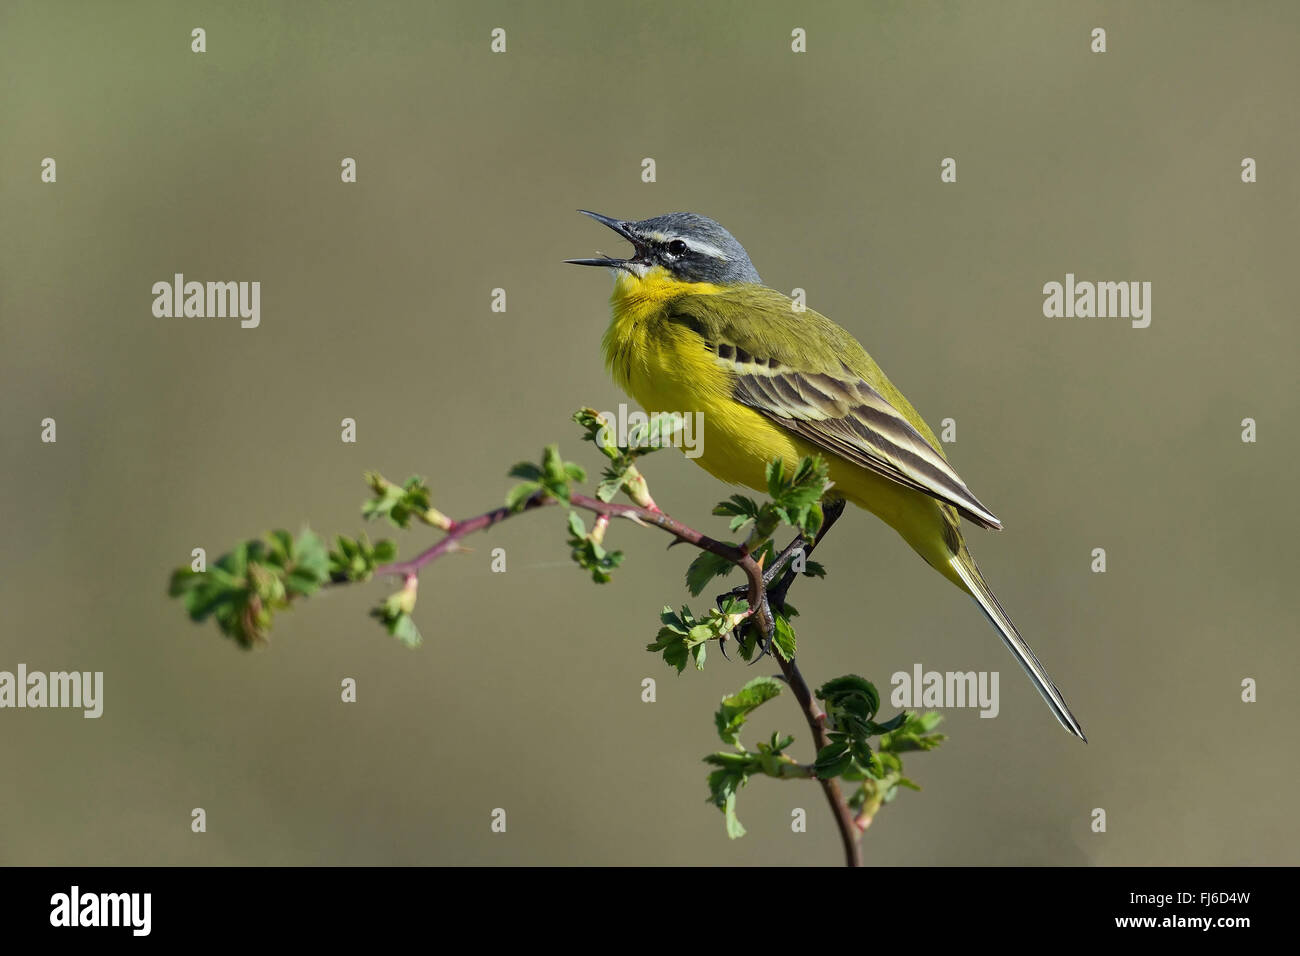 Yellow wagtail (Motacilla flava), singing on a branch, Austria - Stock Image